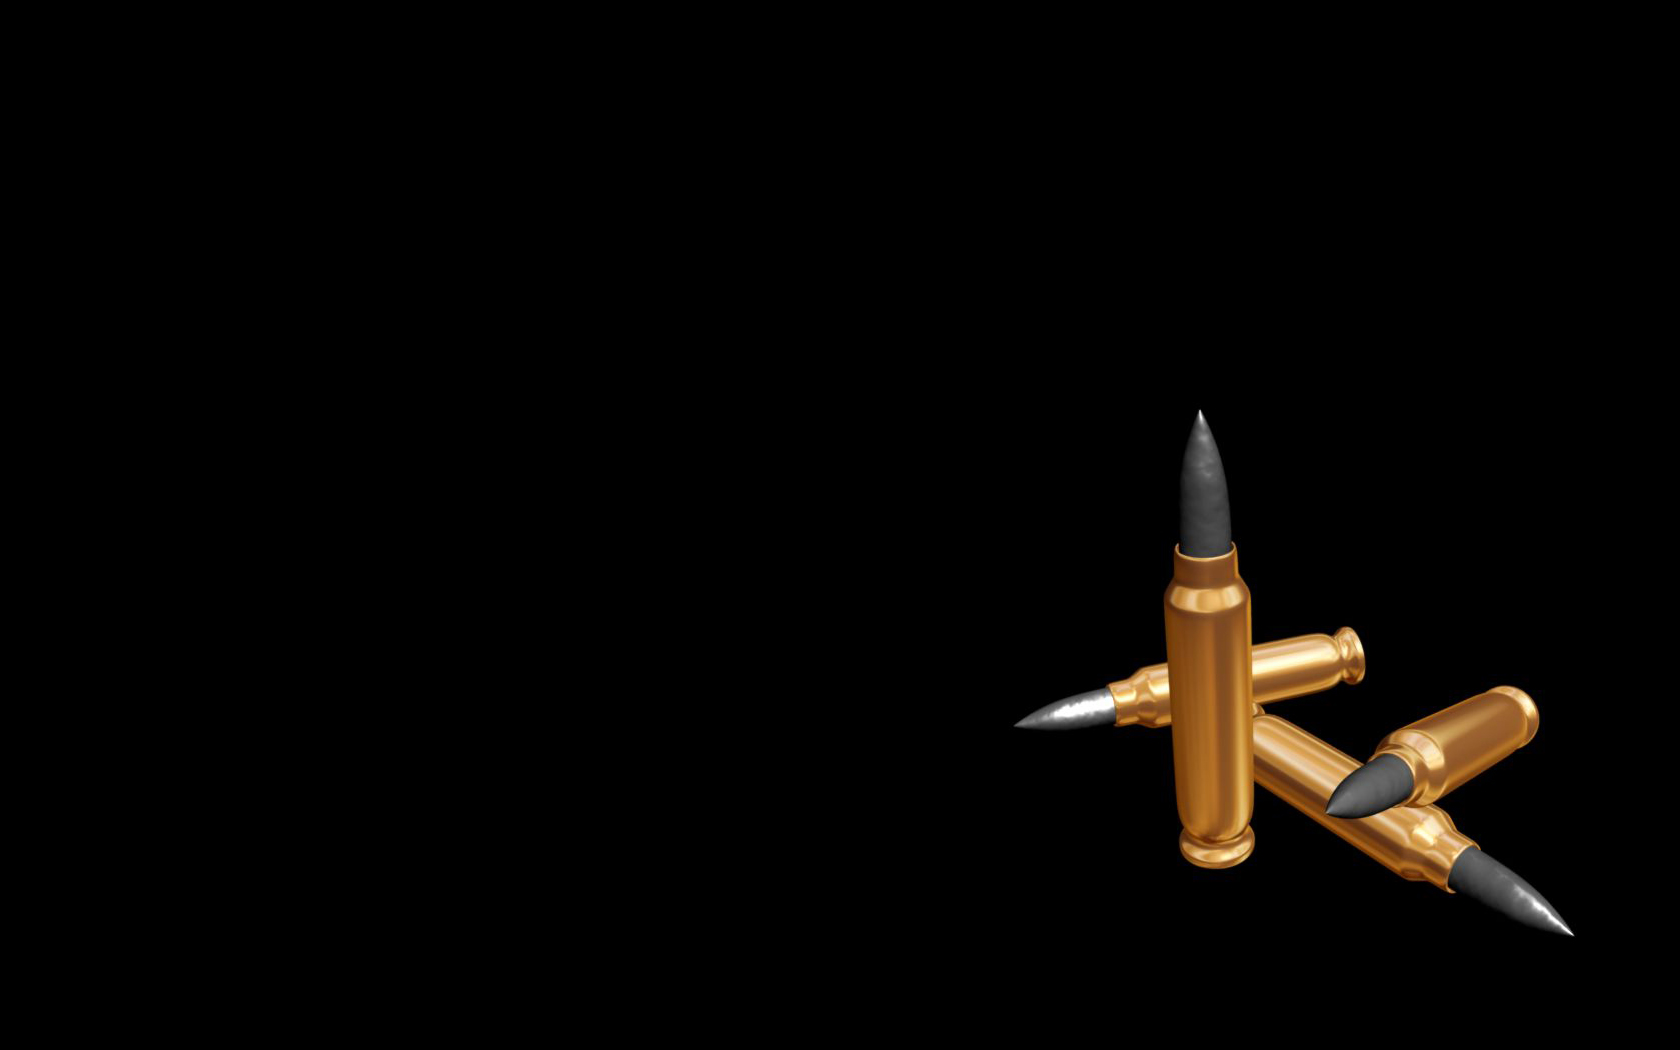 bullet wallpaper collection for - photo #23